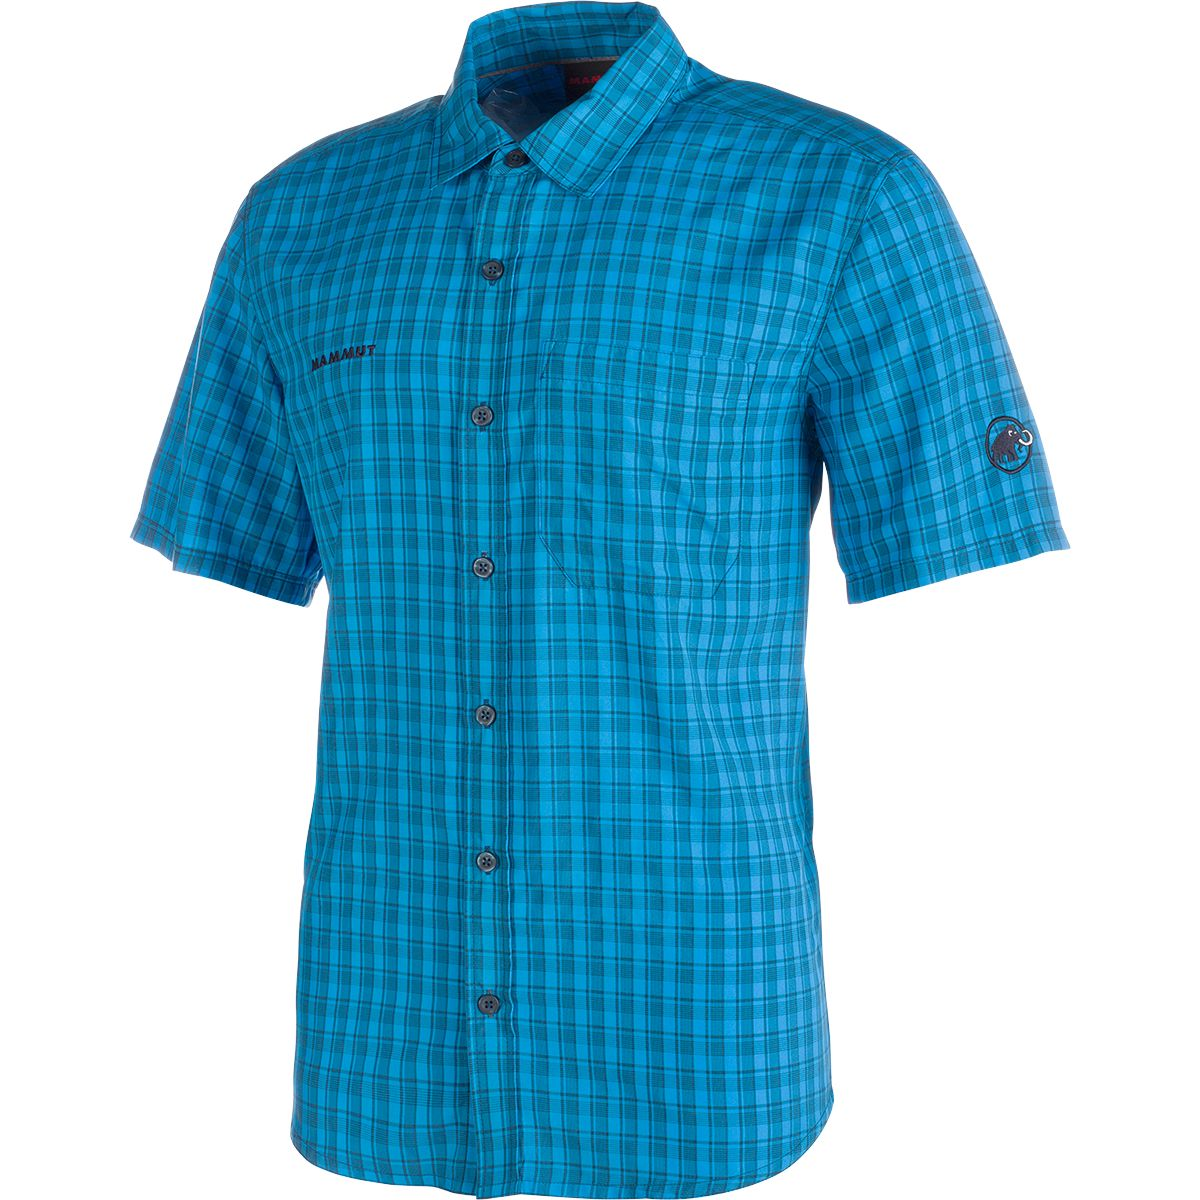 Mammut Herren Lenni Shirt atlantic-orion L 1030-01830-5872-L